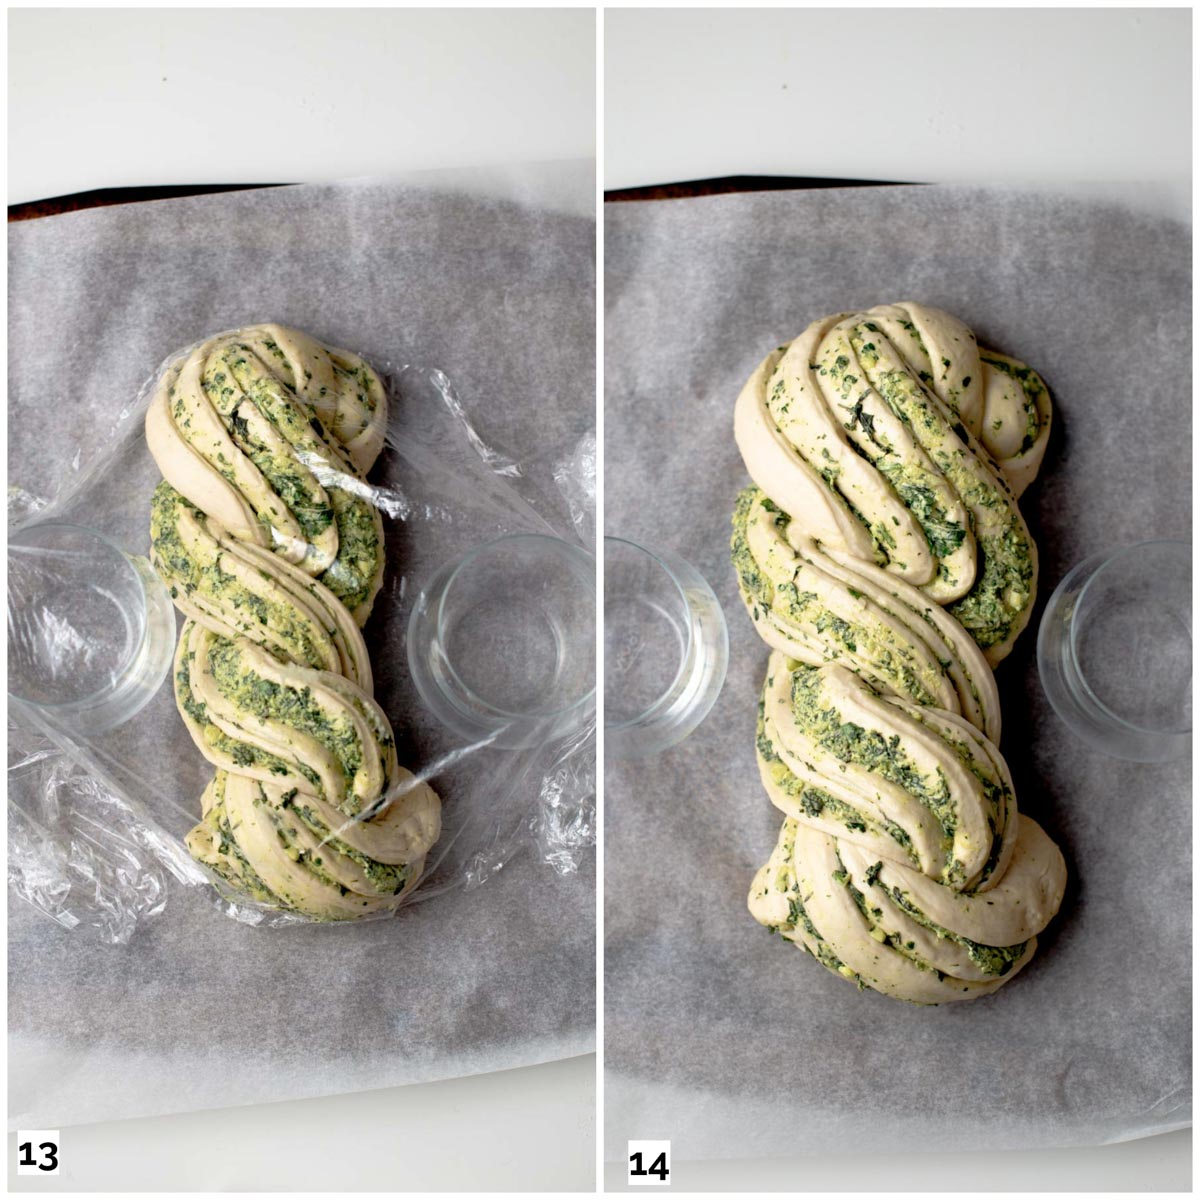 A collage of two images showing twisted garlic bread before and after rising.